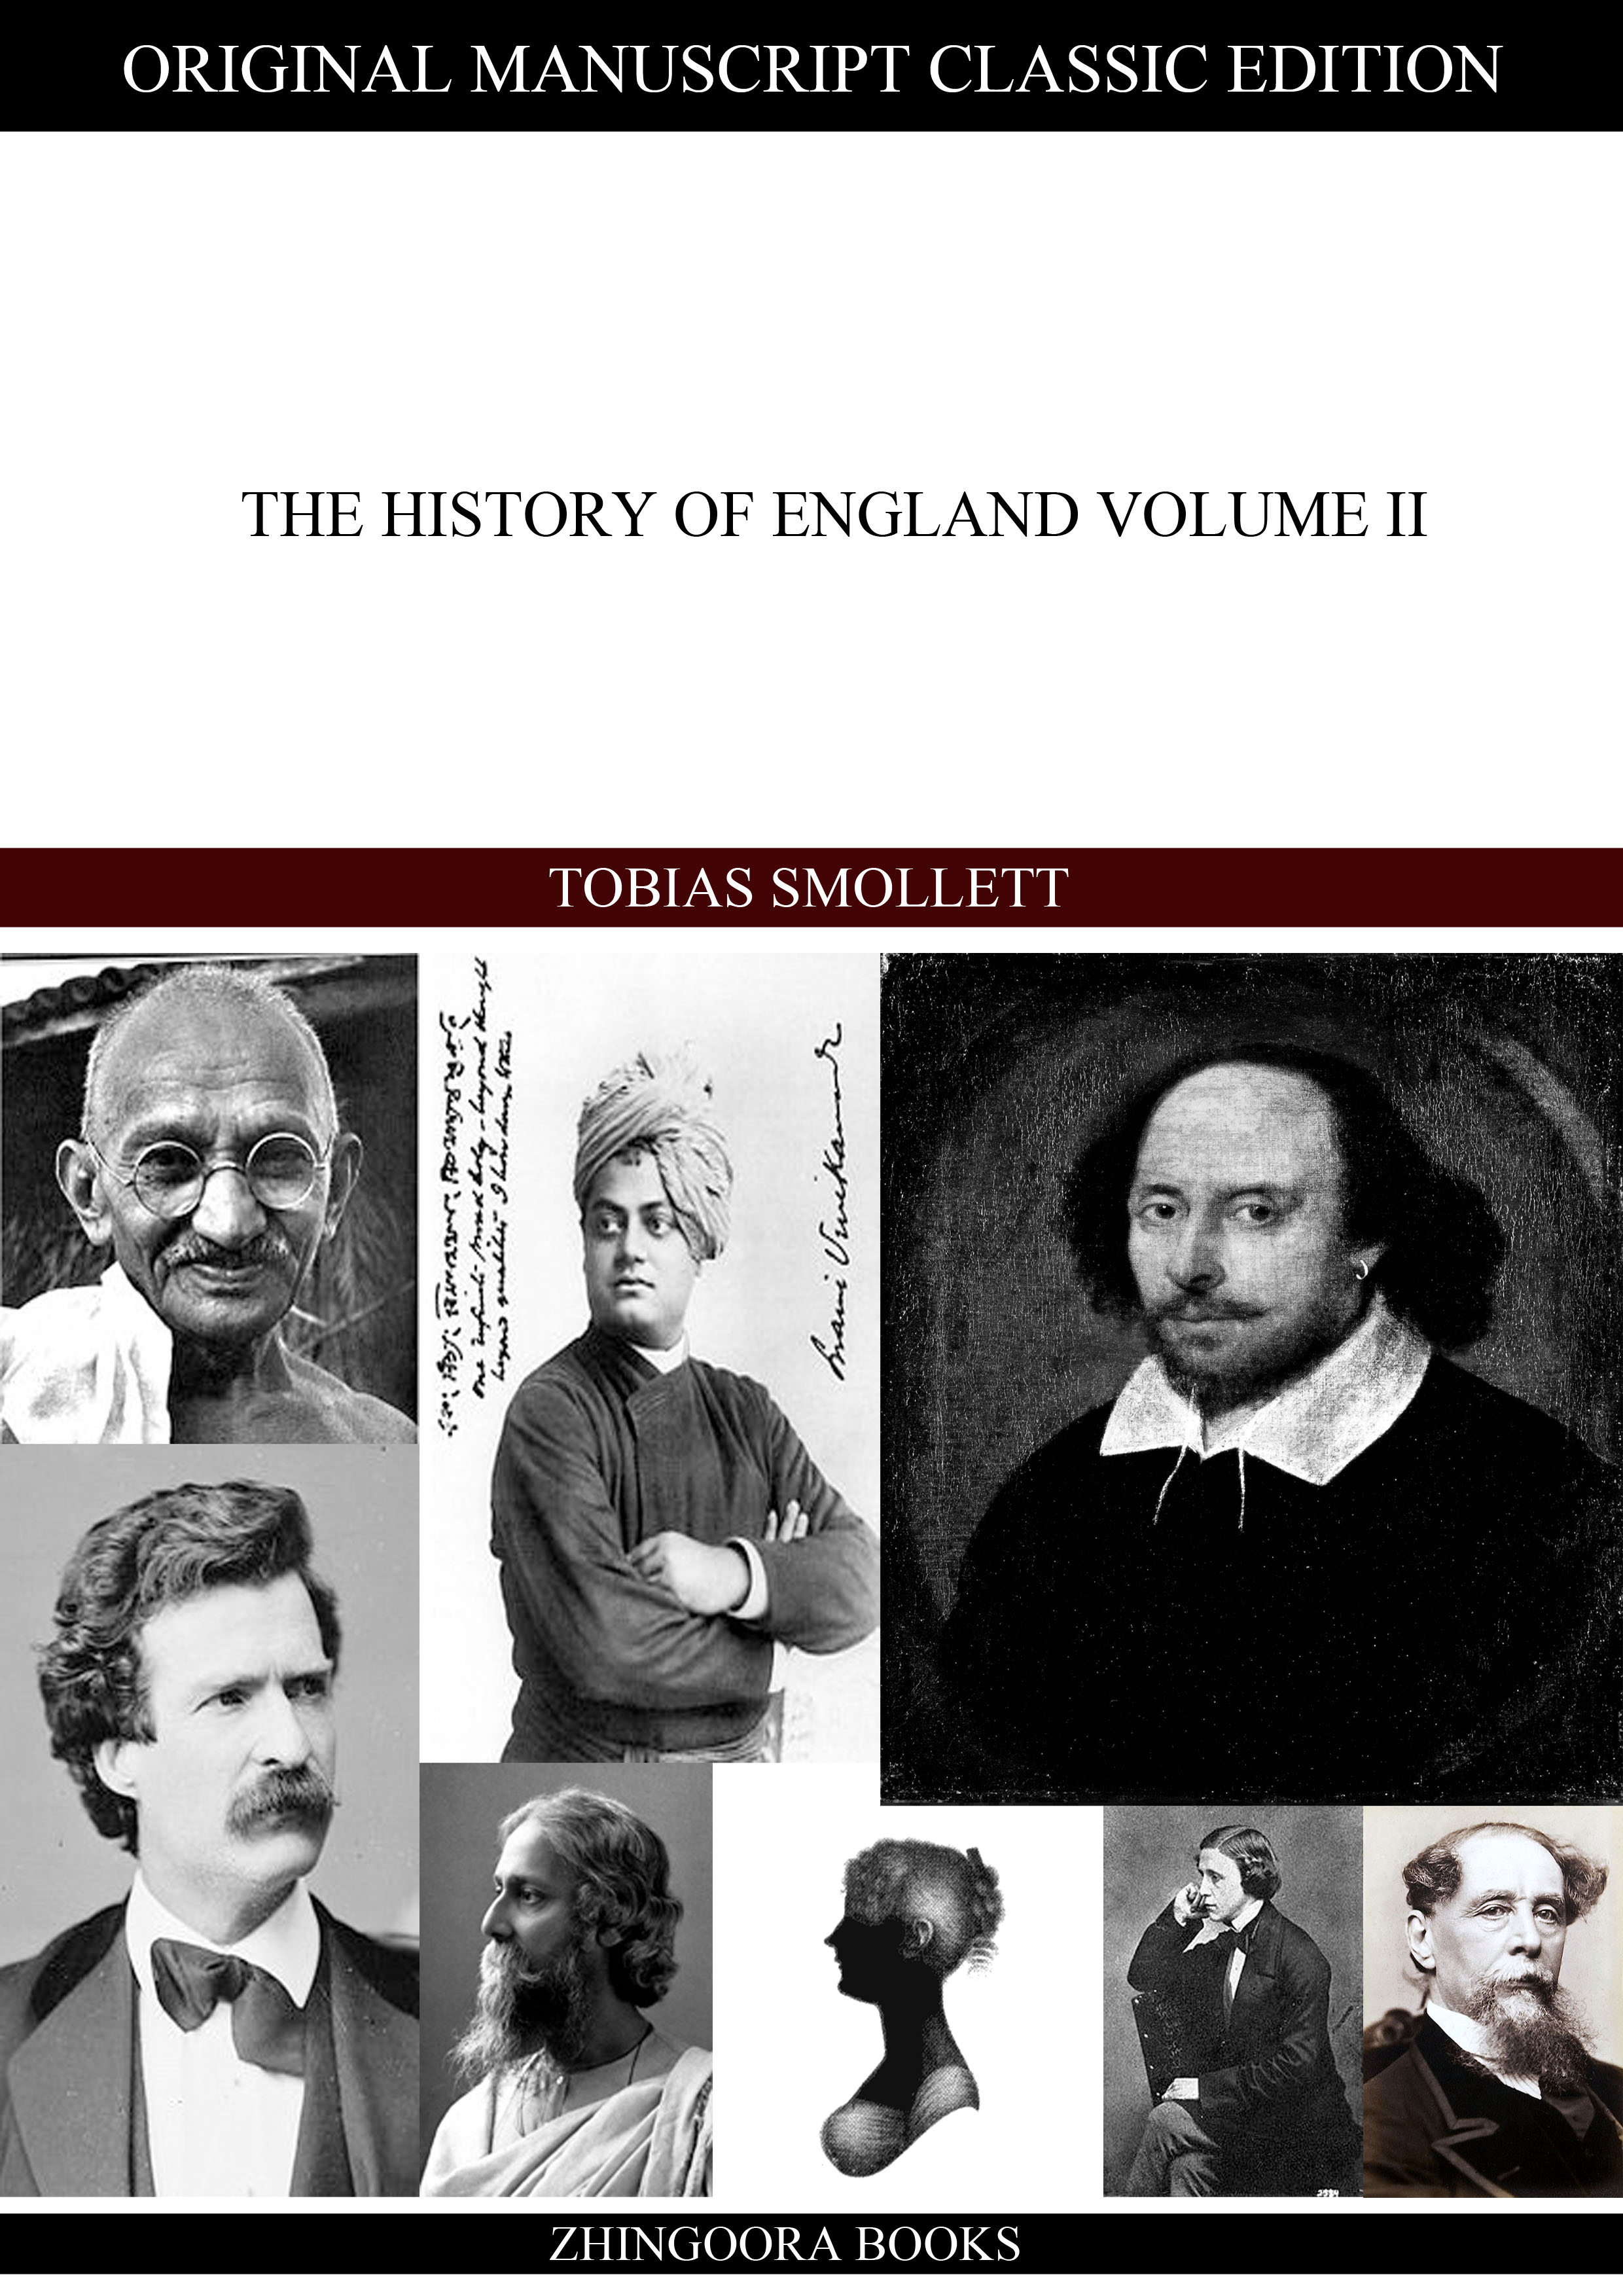 The History Of England Volume II